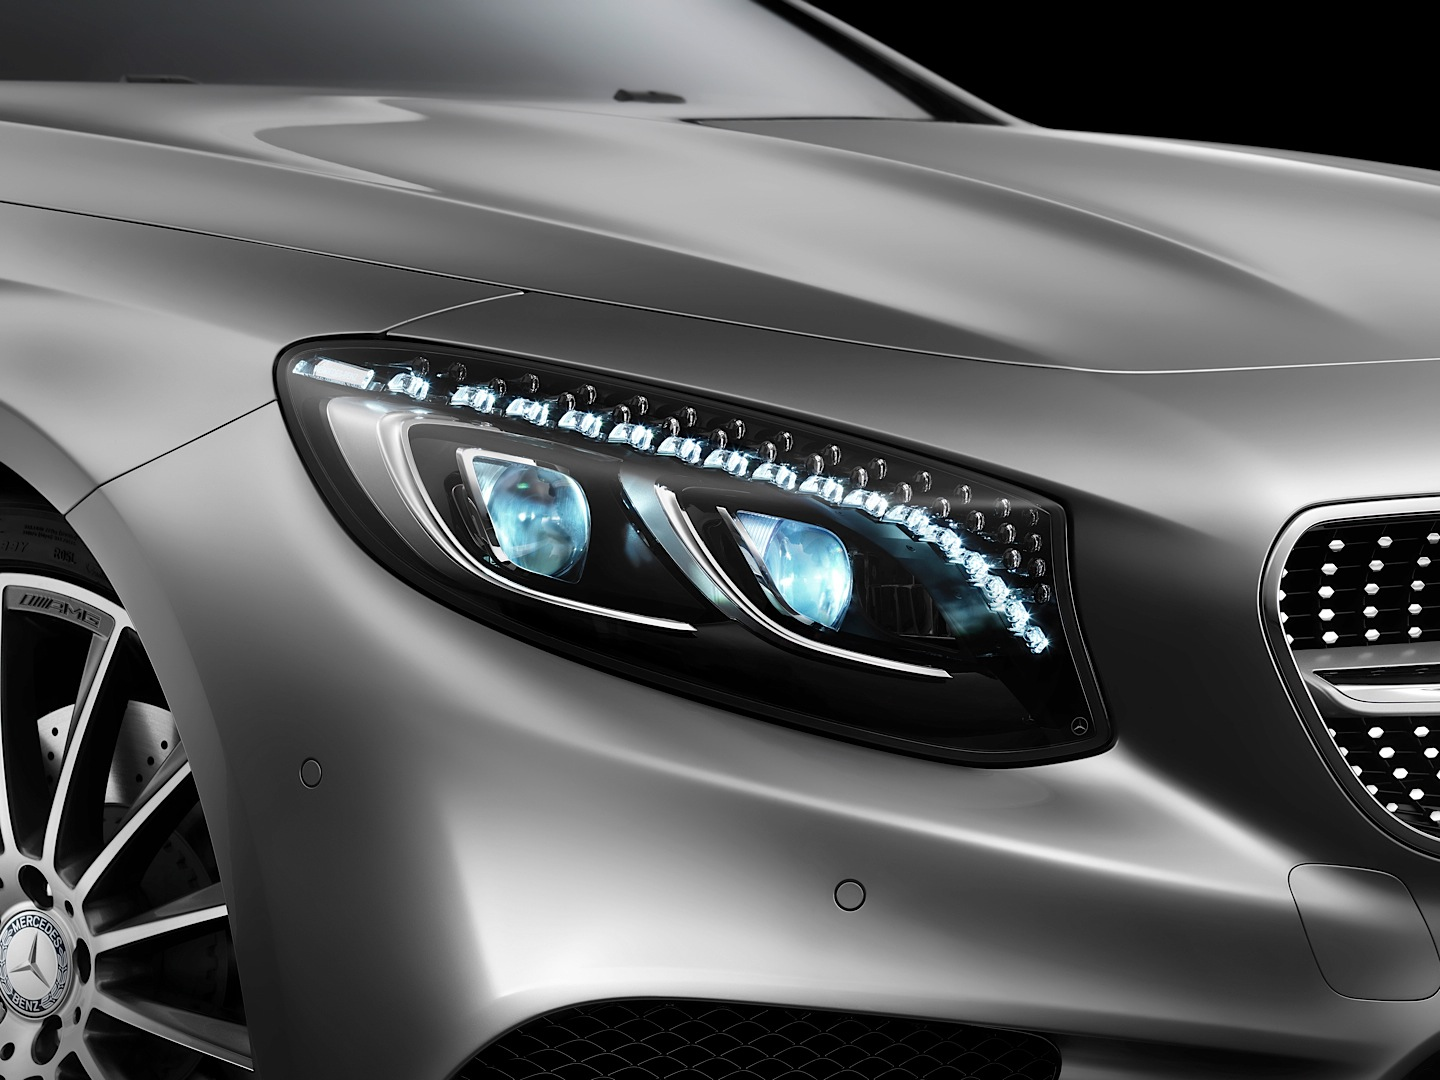 2015 S-Class Coupe (C217) Has Swarovski Crystal Headlights ...